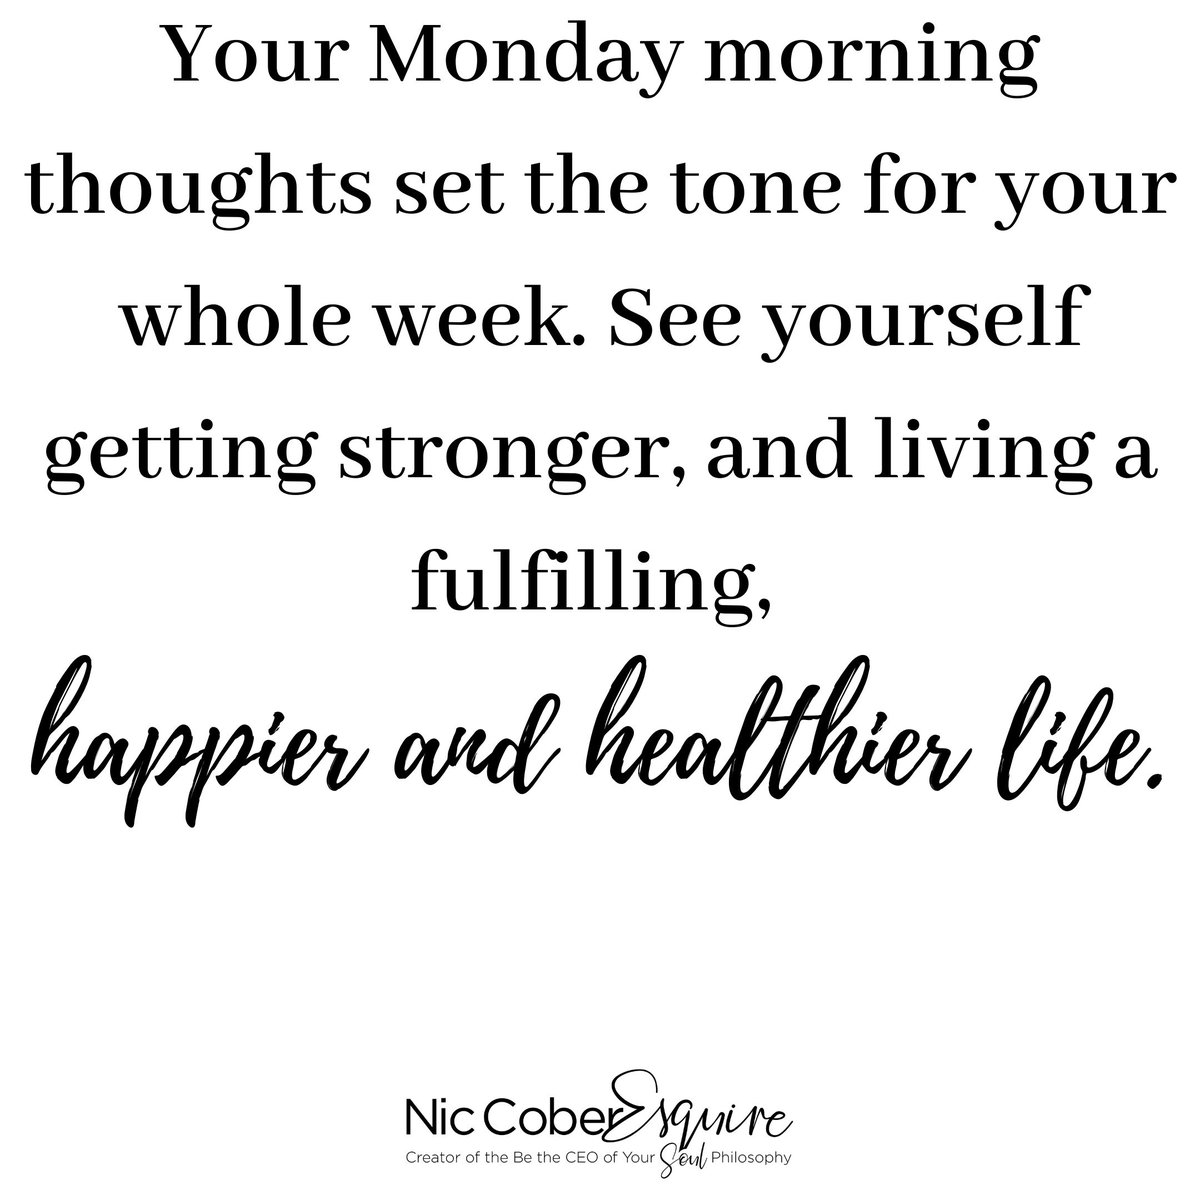 Get your mind right! Your success is linked to the thoughts and intentions you set in your mind. Let's start this week on a positive note. Your Friday will thank you for it! 😎😎😎  #monday #motivation #positivequotes #strong #success #business #womeninbusiness #smallbusiness https://t.co/PKHBfMWWGy